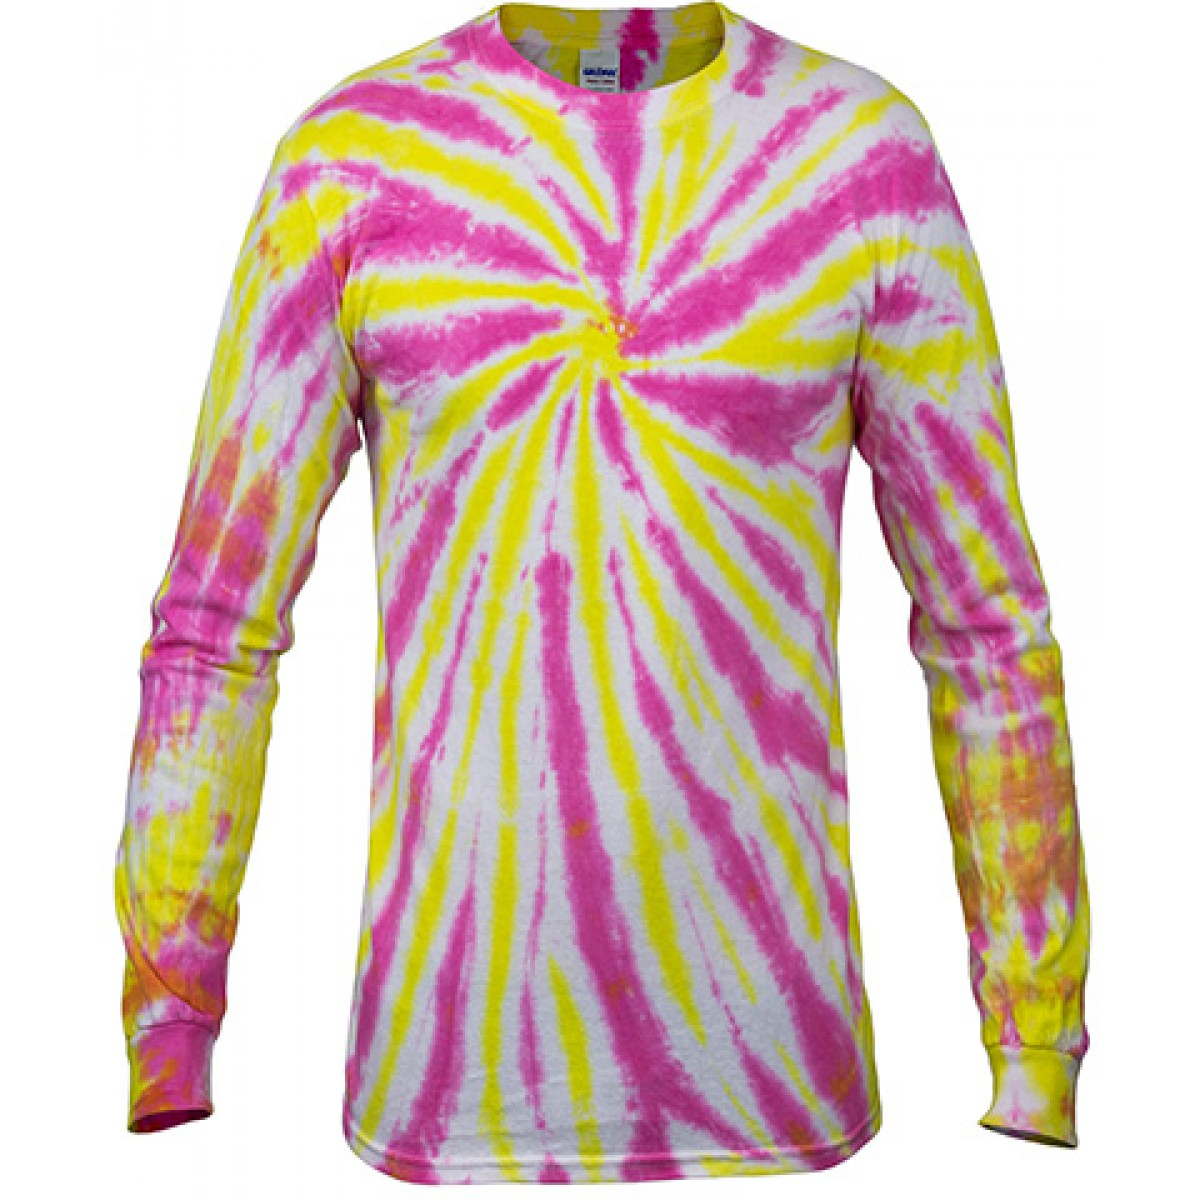 Multi Color Tie-Dye Long Sleeve Shirt -Pink-L